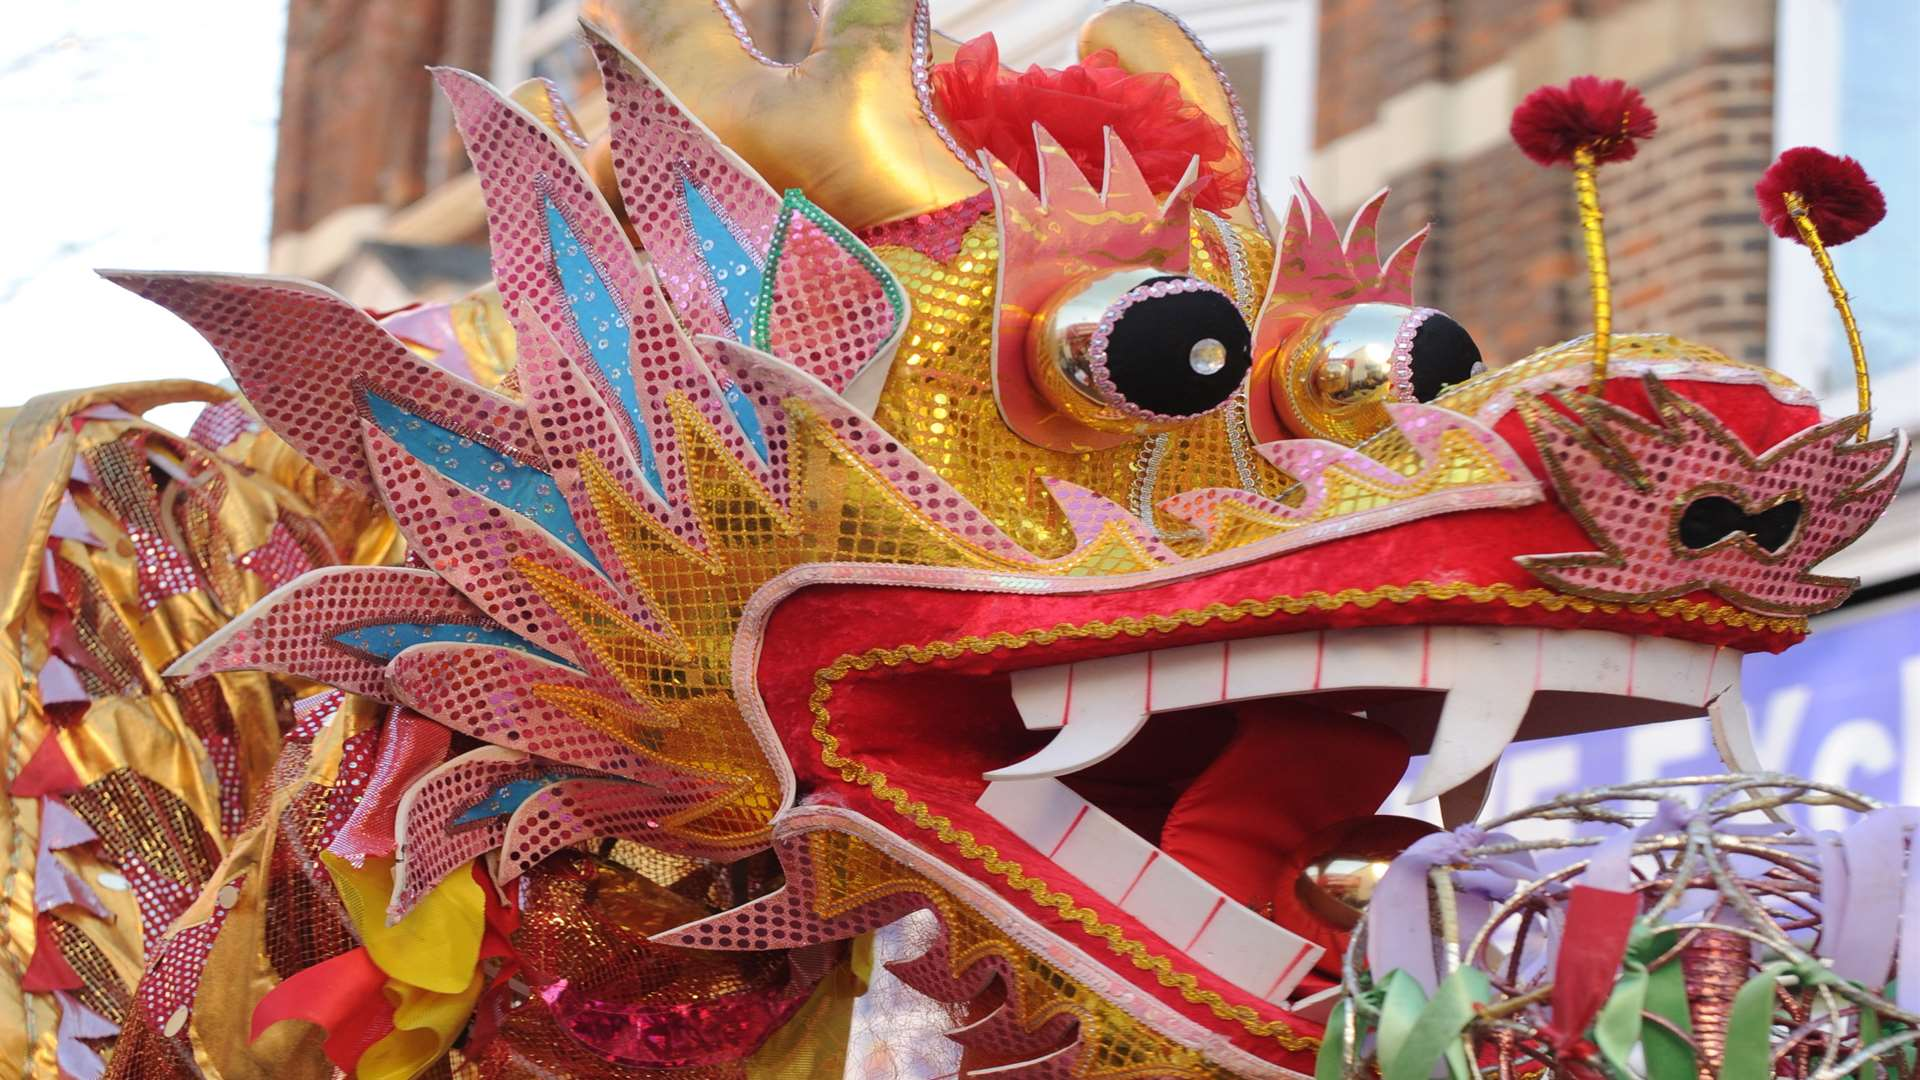 Chinese New Year celebrations start this weekend